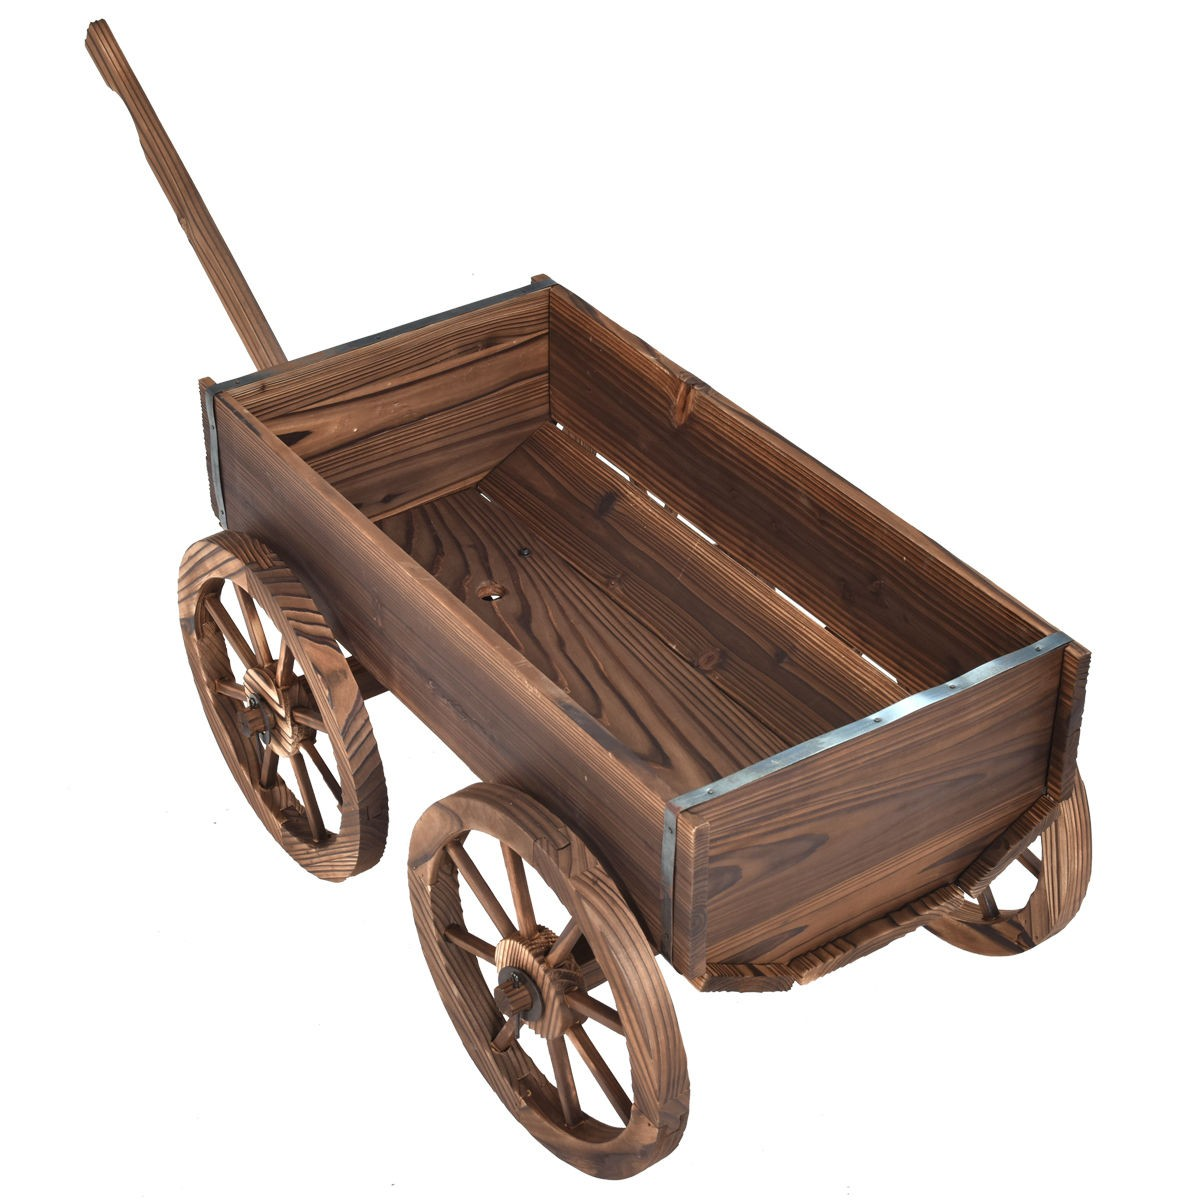 Plant Stands On Wheels Wood Wagon Planter Pot Stand With Wheels Pots And Planters